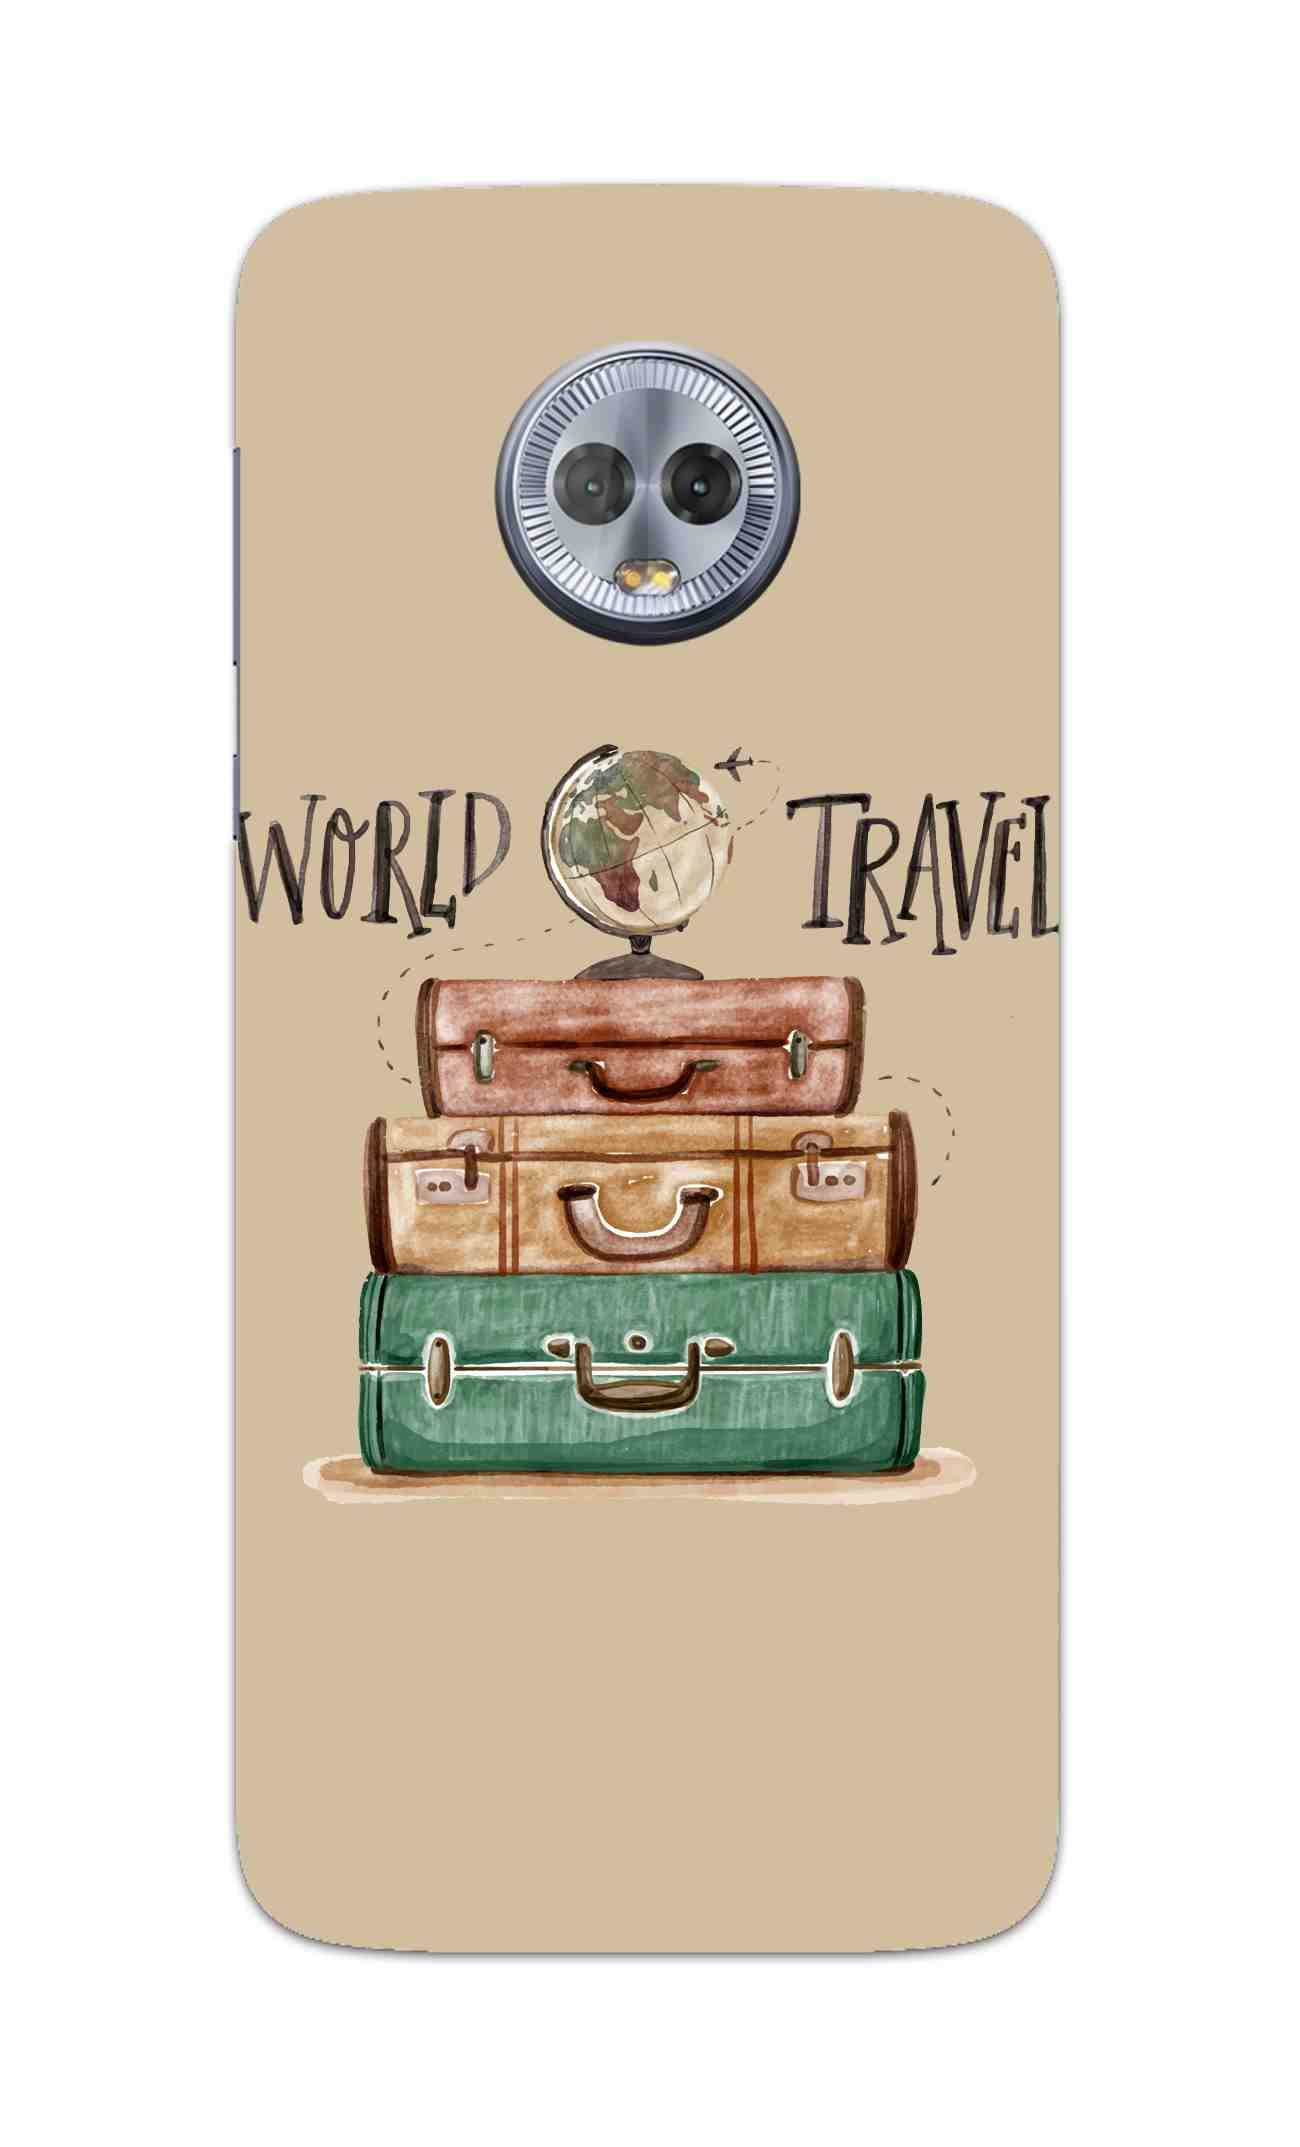 Travel World With Bags For Travellers Moto G6 Mobile Cover Case - MADANYU